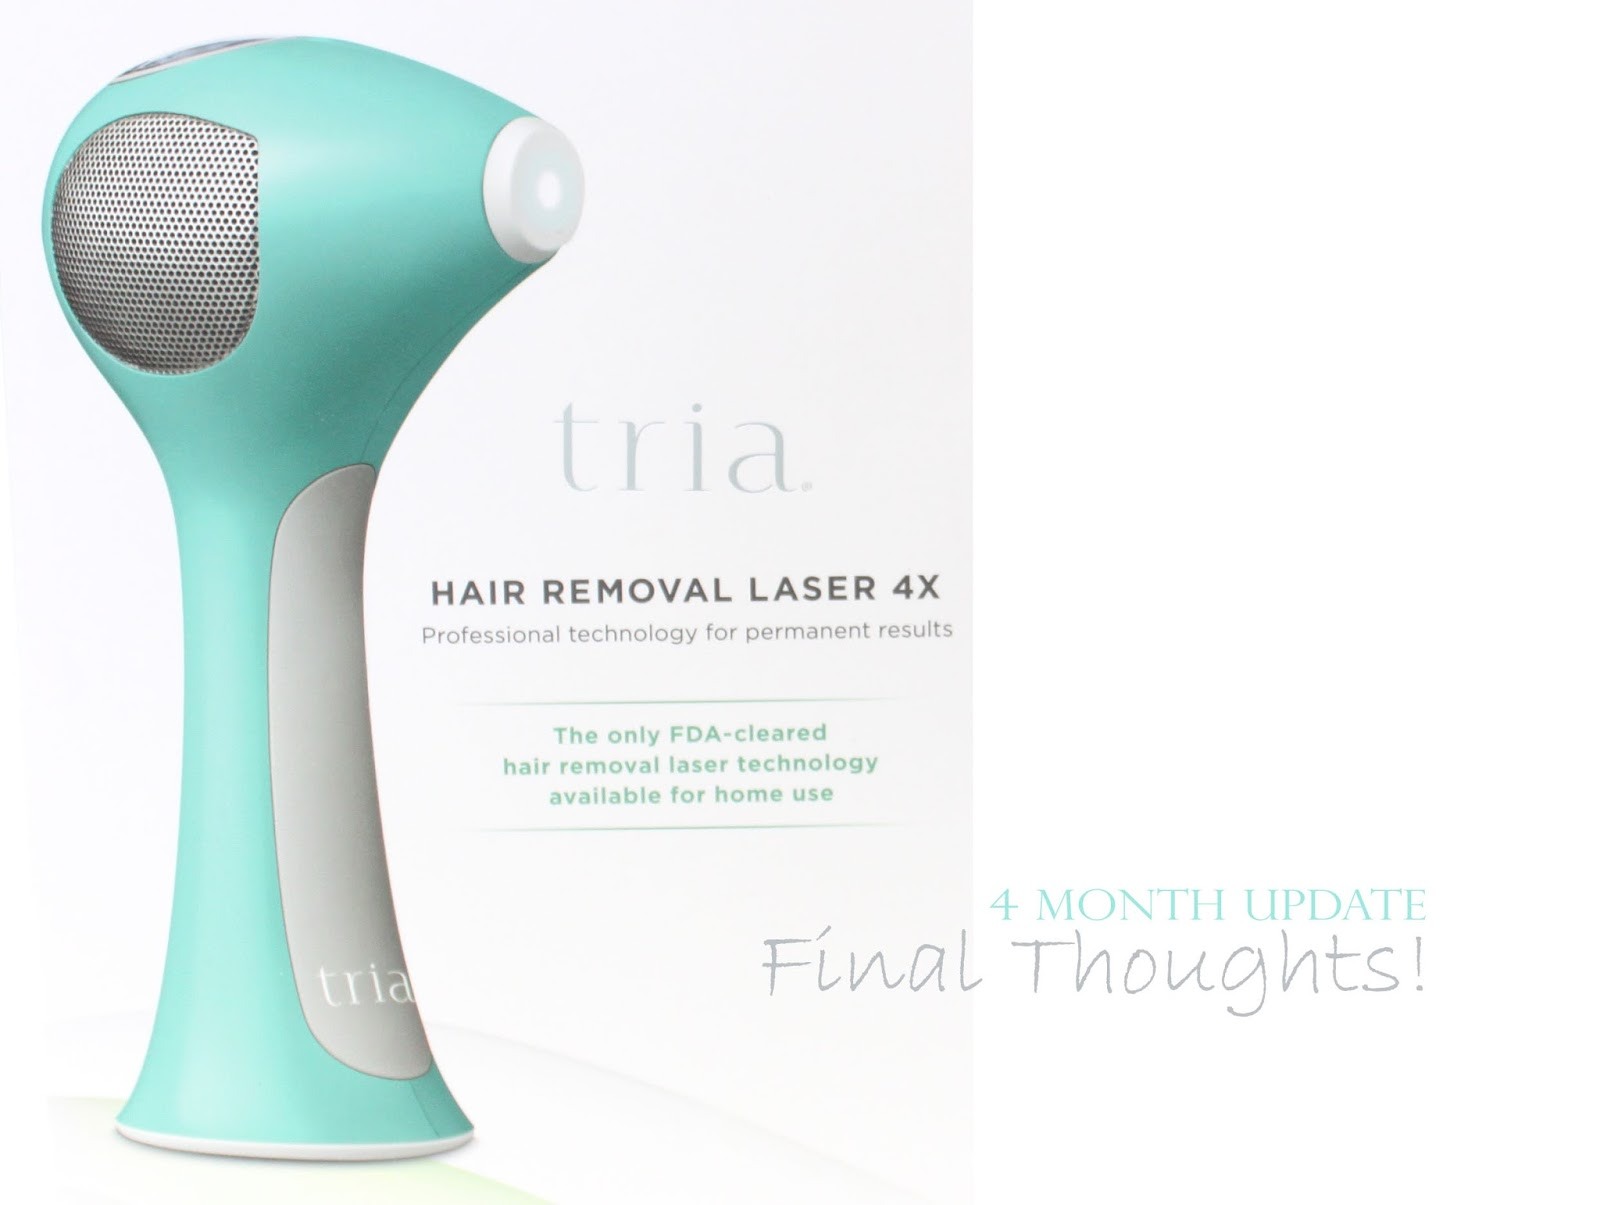 Shopping Tips for TRIA Beauty: 1. Get on the TRIA Beauty emailing list and receive product updates, exclusive savings, free gifts and more. 2. If you are not happy with the laser products, anti-aging, acne or hair removal products, you can send them back within 90 days and get your money back.